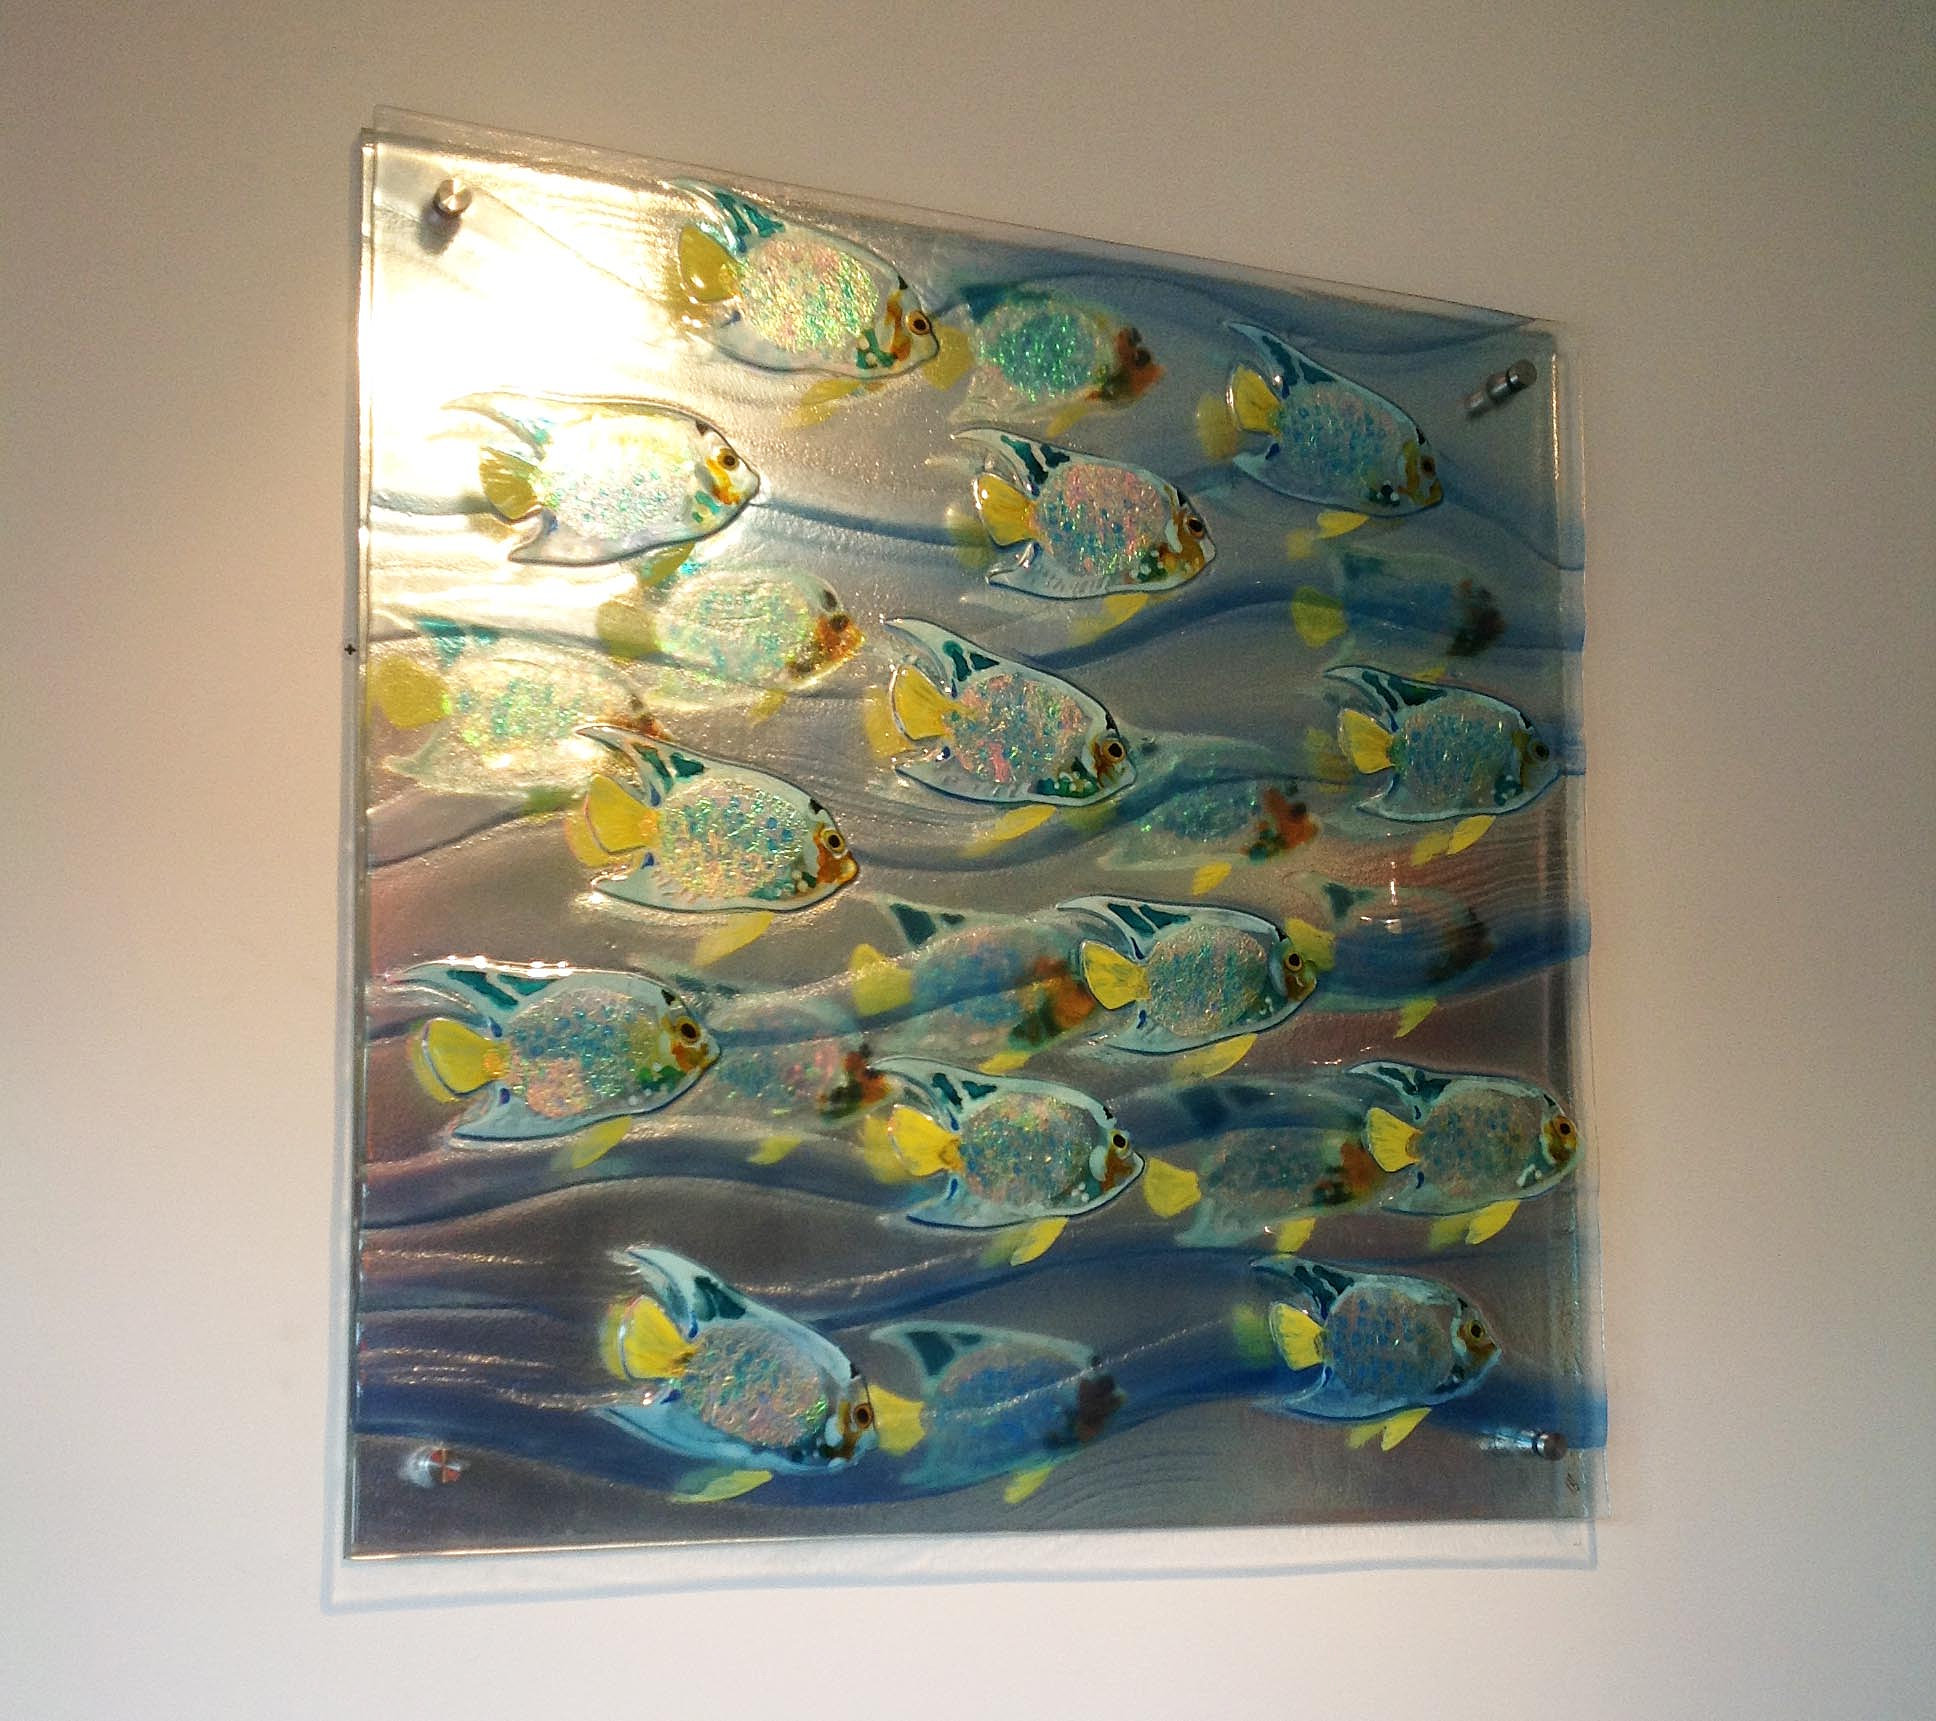 Wall Art Glass Framed : Slumped glass wall art gold coast